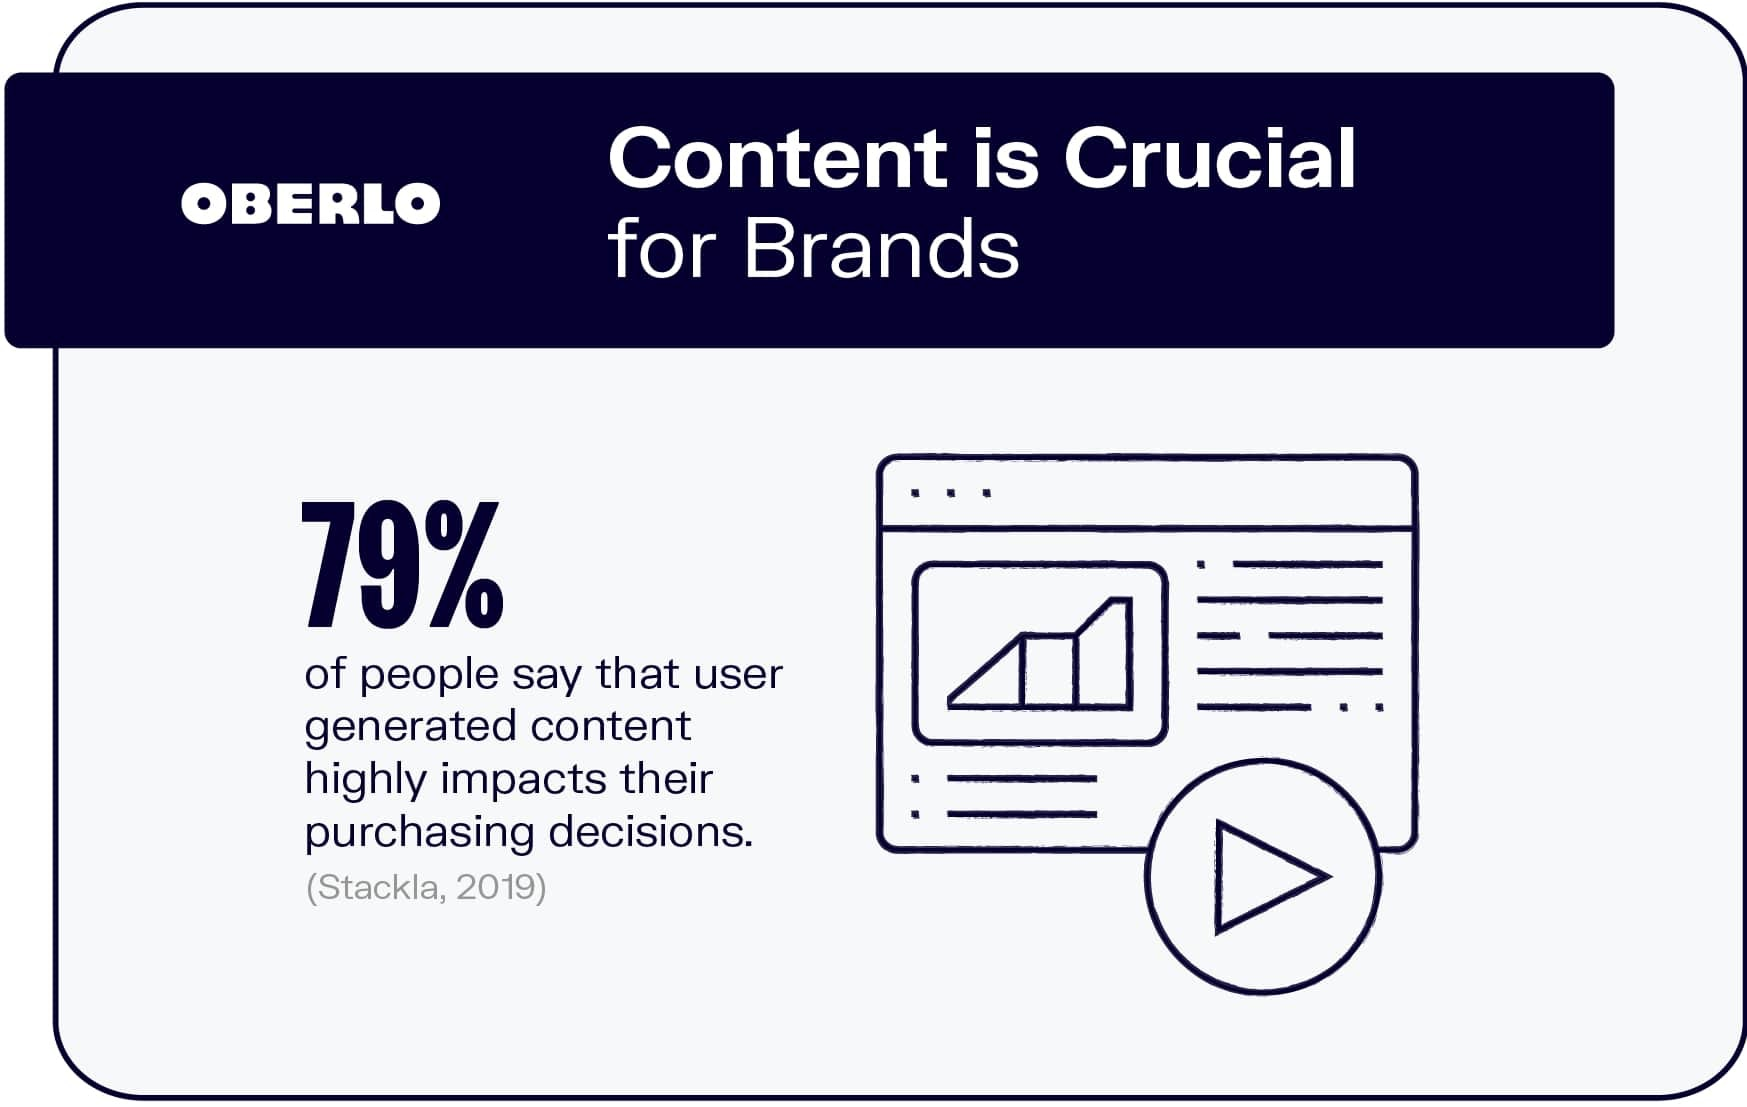 Content is Crucial for Brands